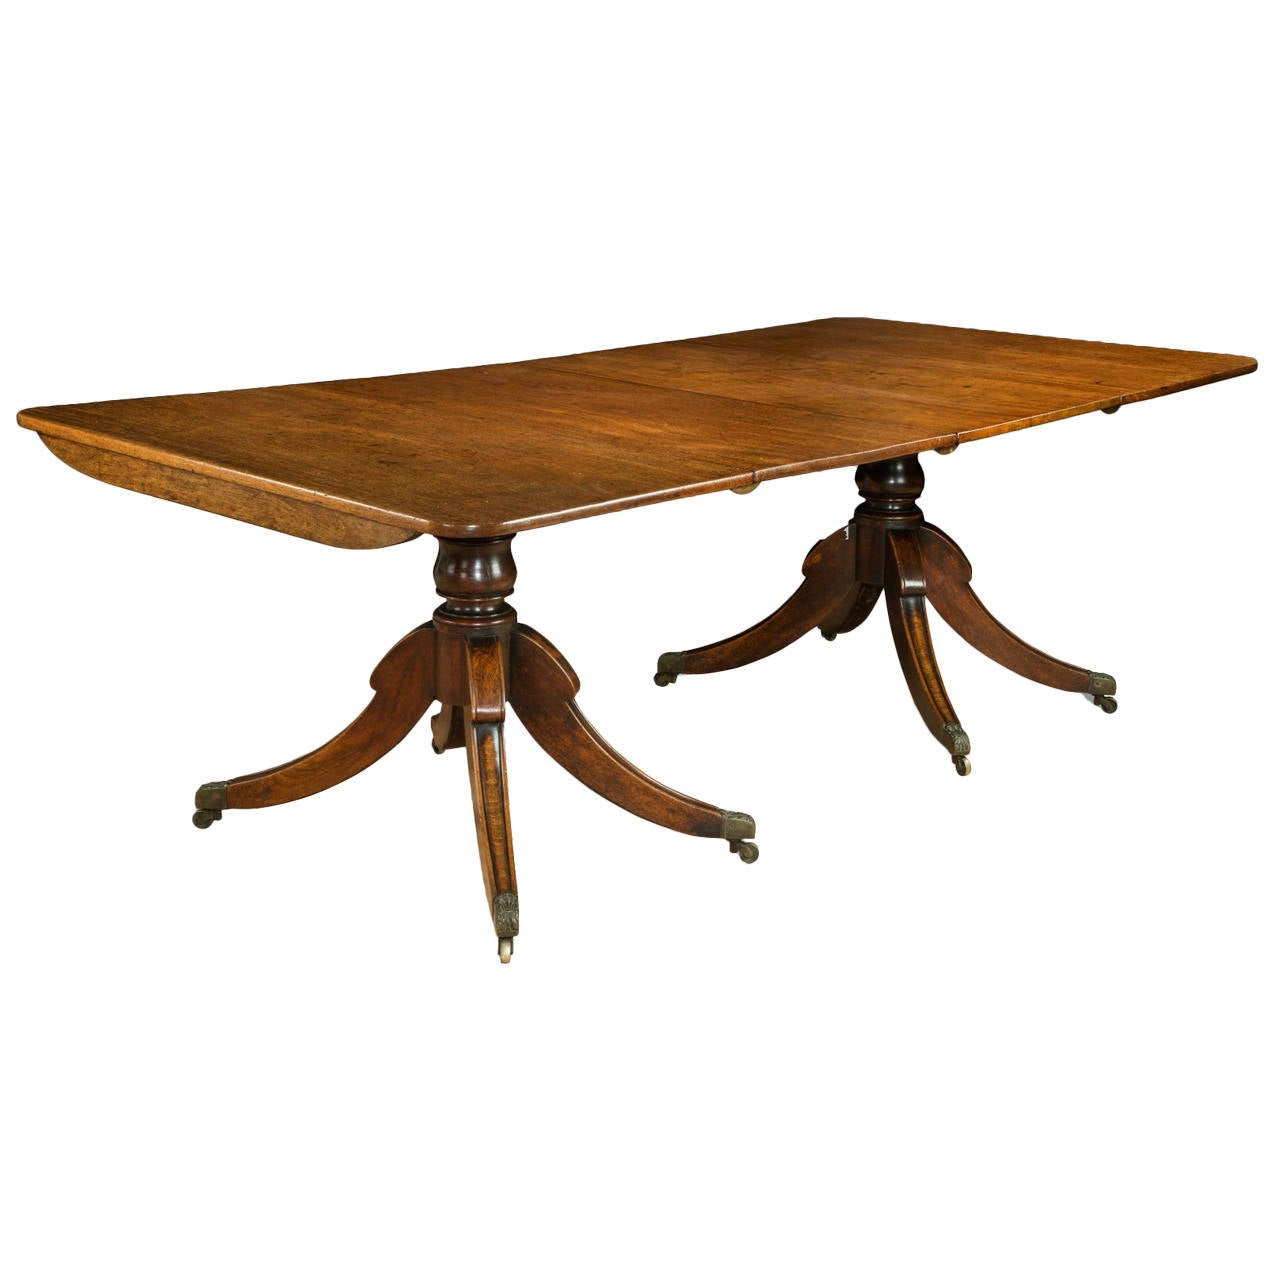 Regency two pillar dining table at 1stdibs for Pillar dining table